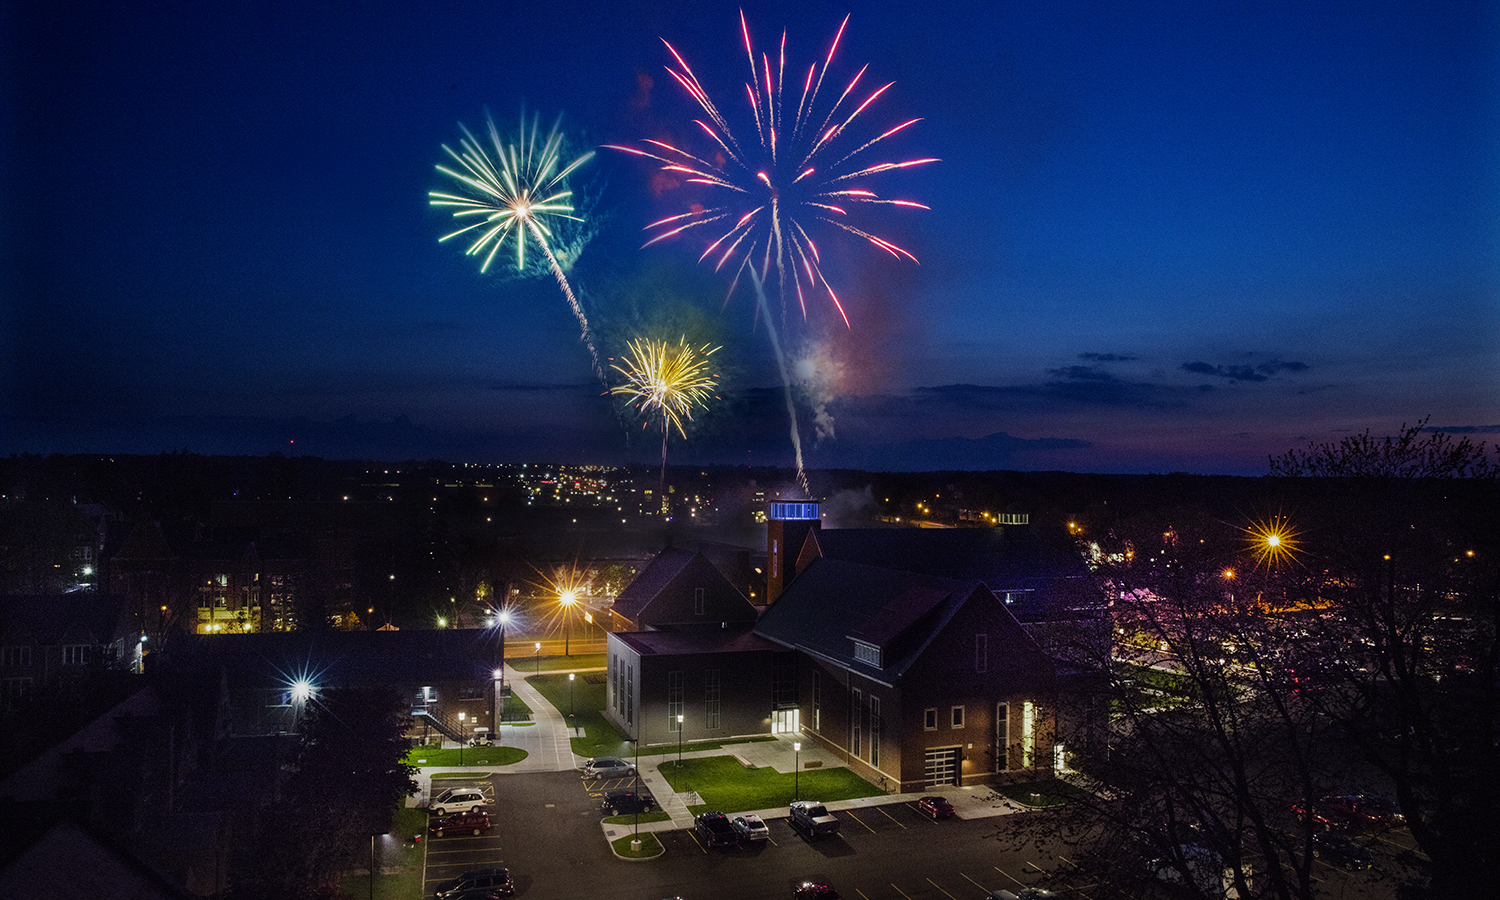 Fireworks fill the sky over the Gearan Center for the Performing Arts during the Senior Barbecue for the Classes of 2016.